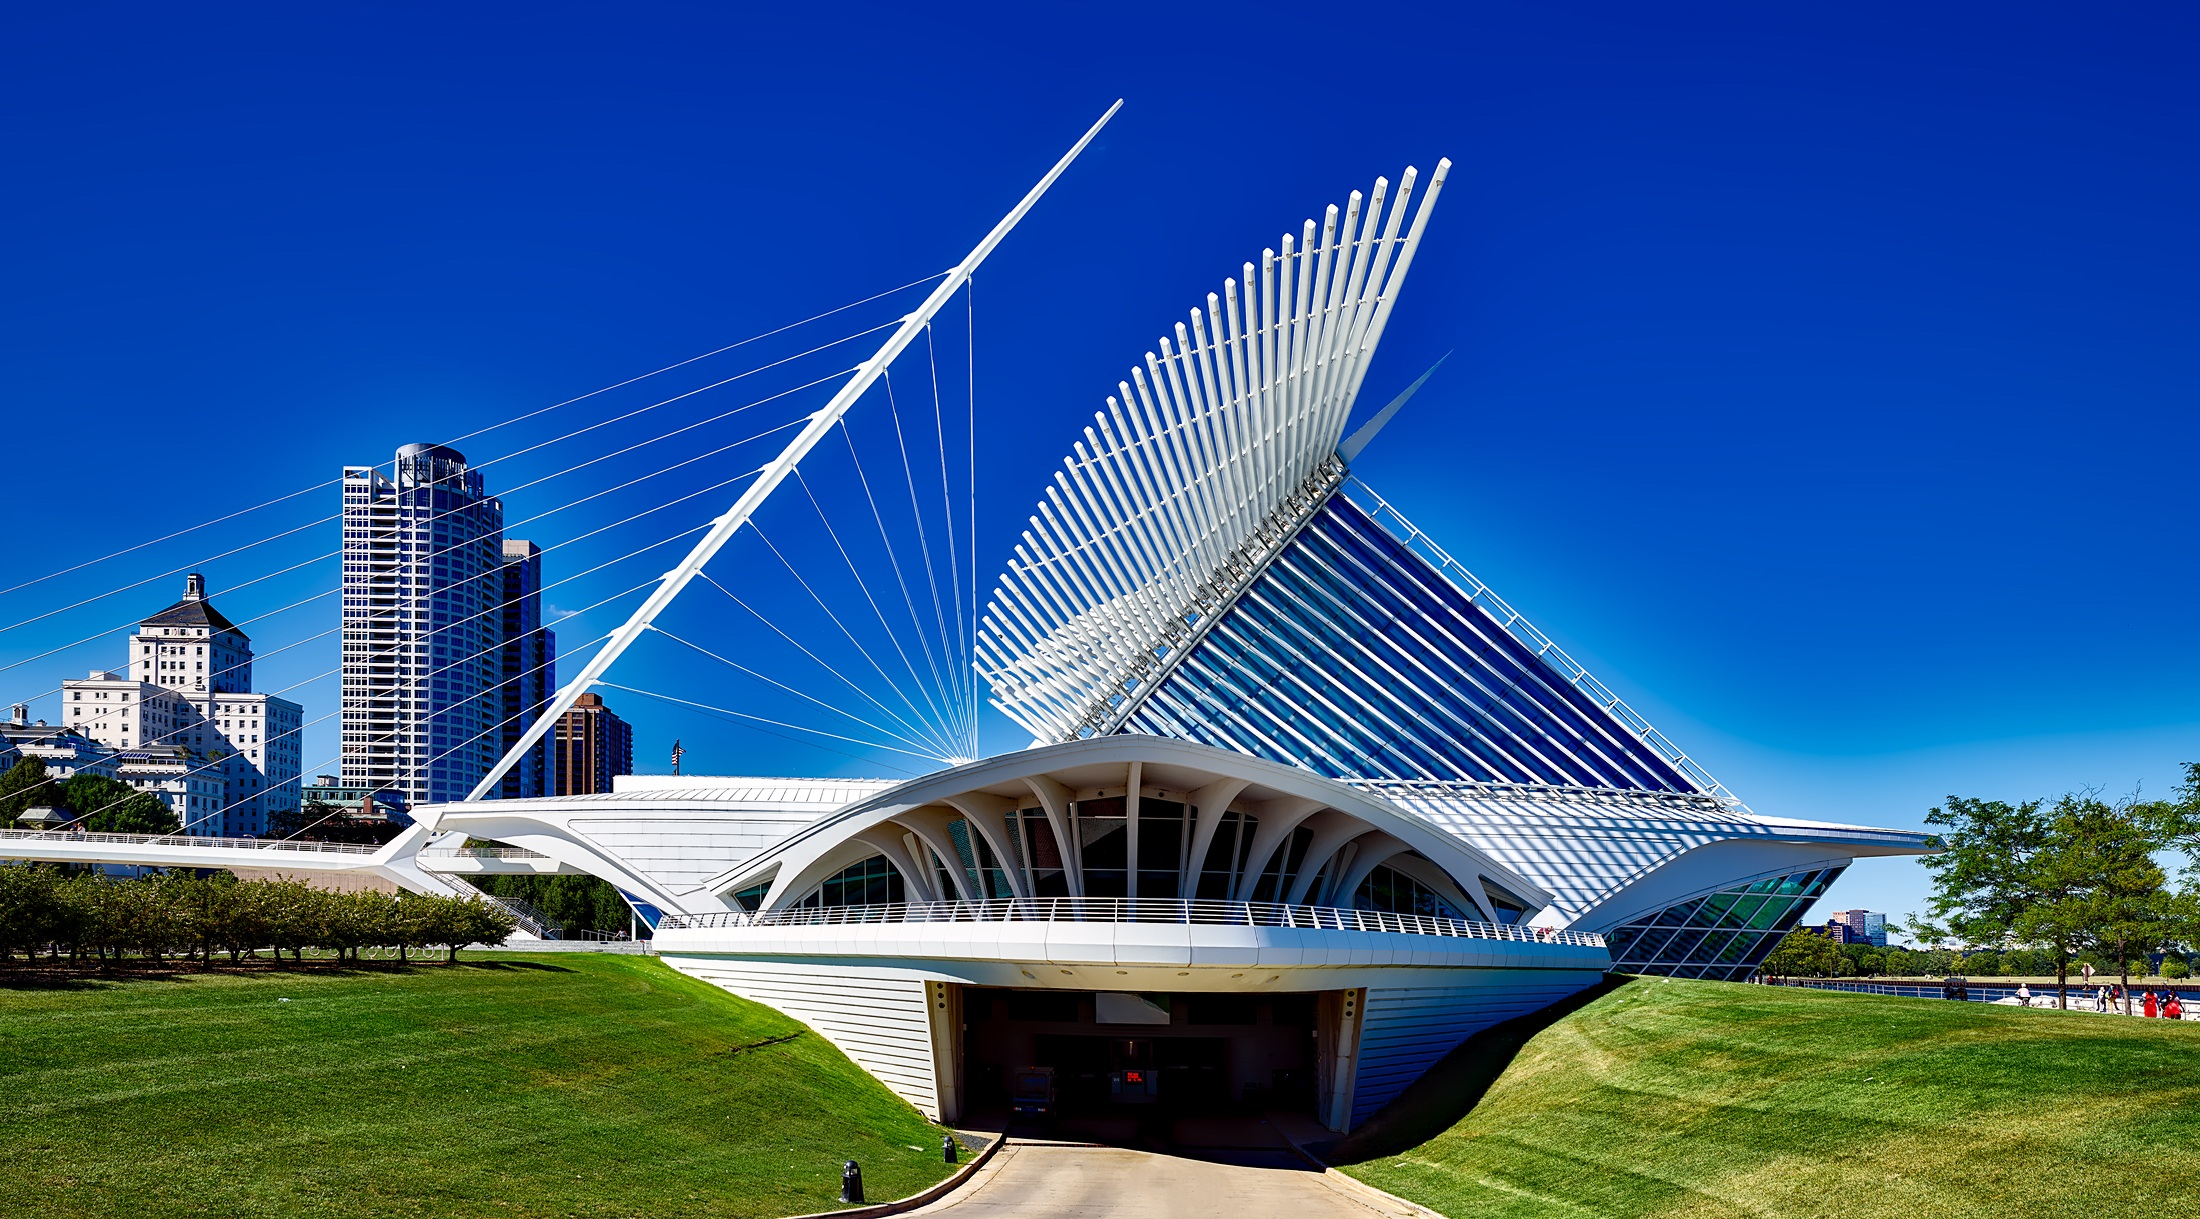 The Milwaukee Art Museum Burke Brise Soleil Where. Law Schools In Orange County Ca. Harry Potter And The Order Of The Pheonix Online. Team Task Management Software. Computer Help Portland Artas Hair Restoration. Expenses Spreadsheet Template. Life Insurance Rate Comparisons. Web Conferencing Software Reviews. Transfer Money With Paypal 401k Savings Plan